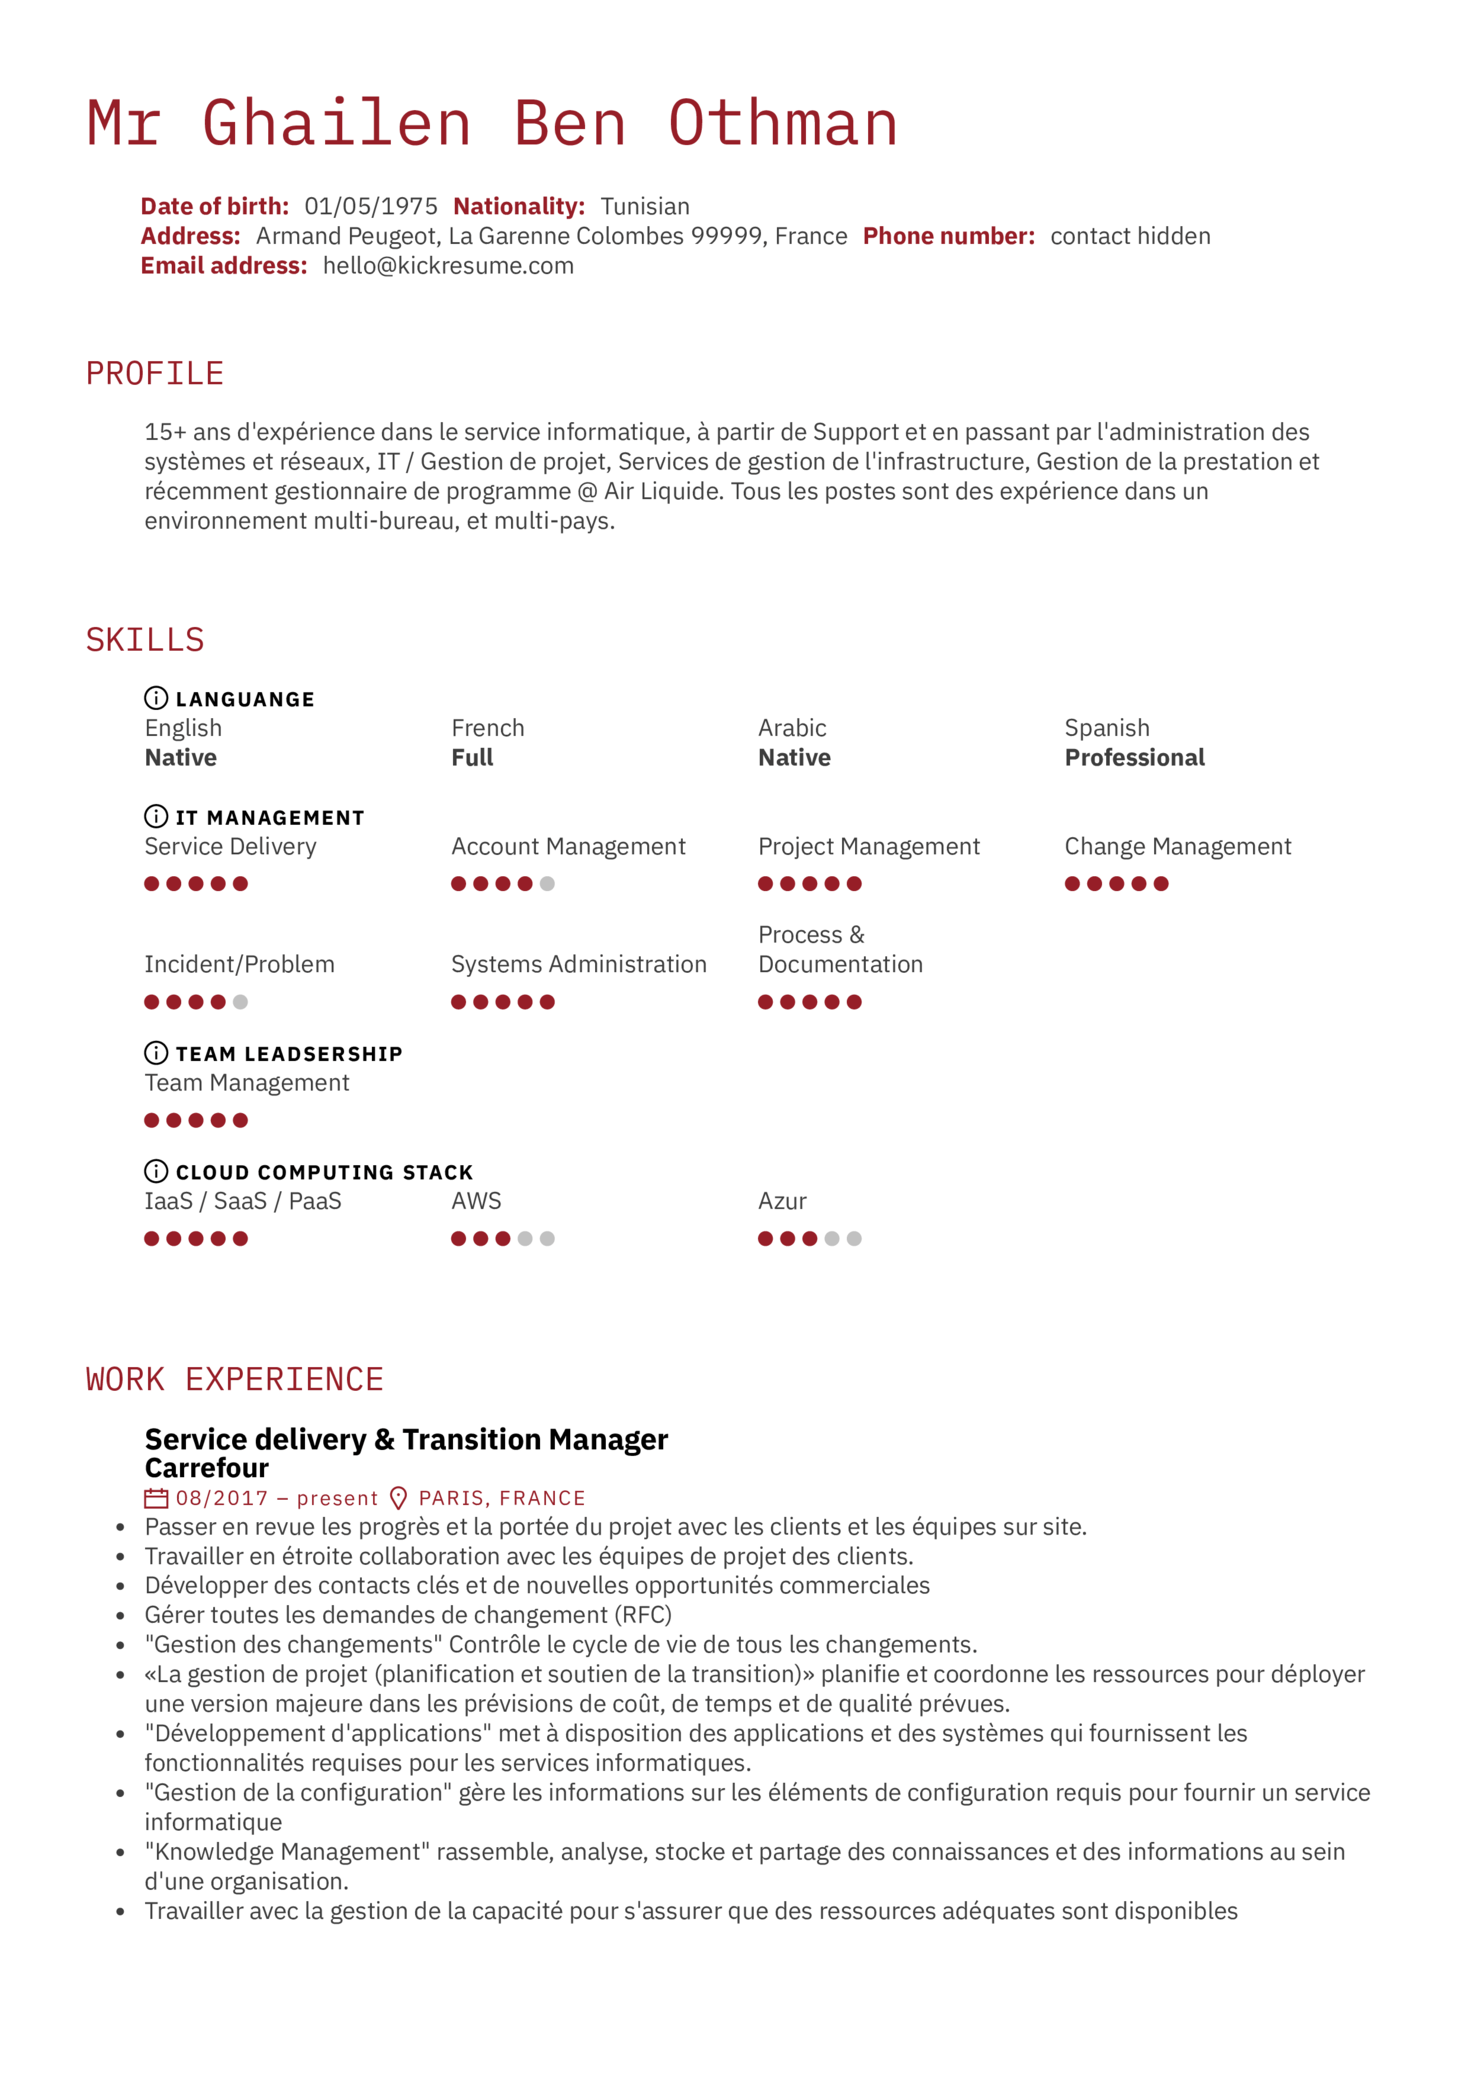 Carrefour Service Delivery Manager Resume Example (Part 1)